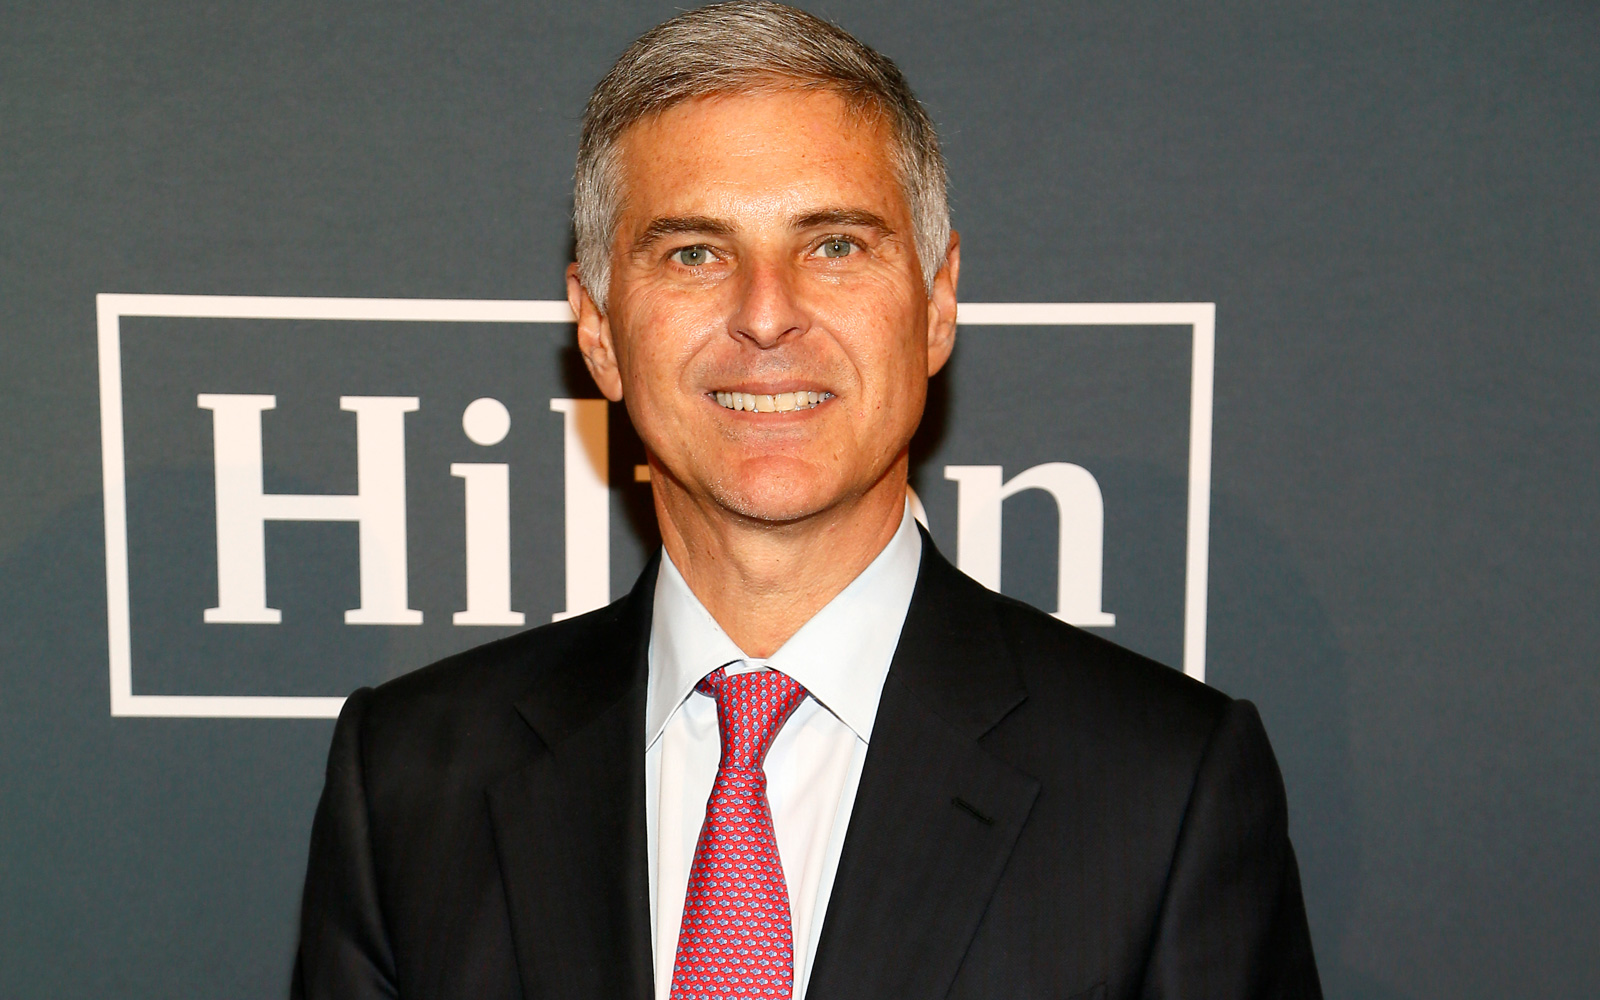 Hilton CEO Rethinks His Position on Tipping Housekeepers